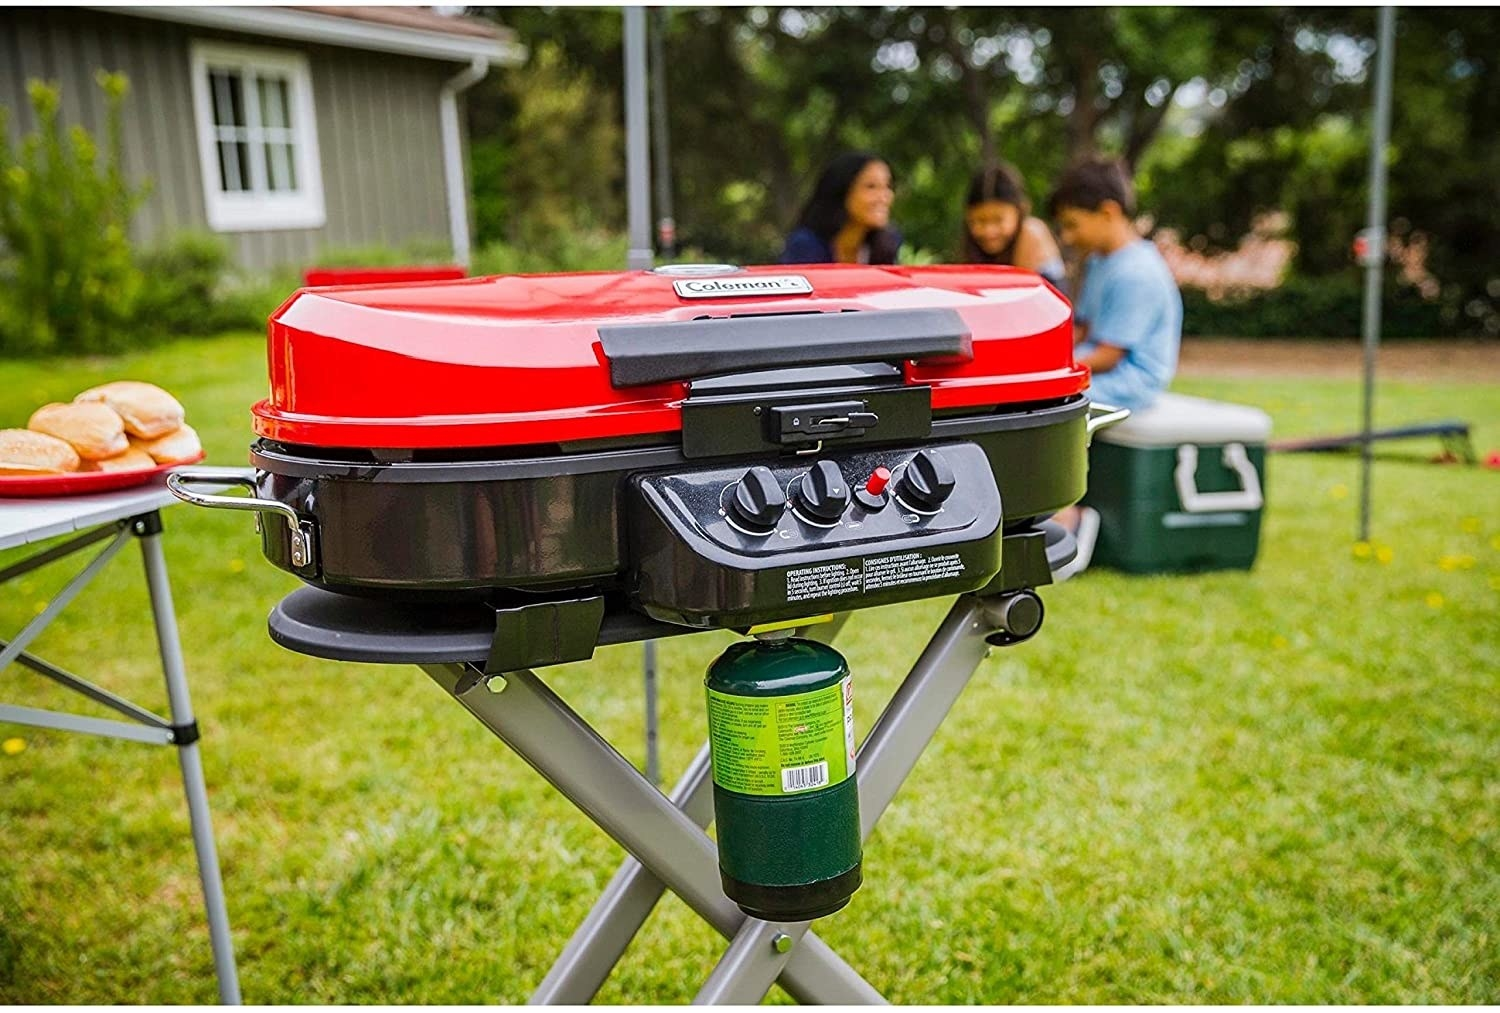 the portable propane grill in red